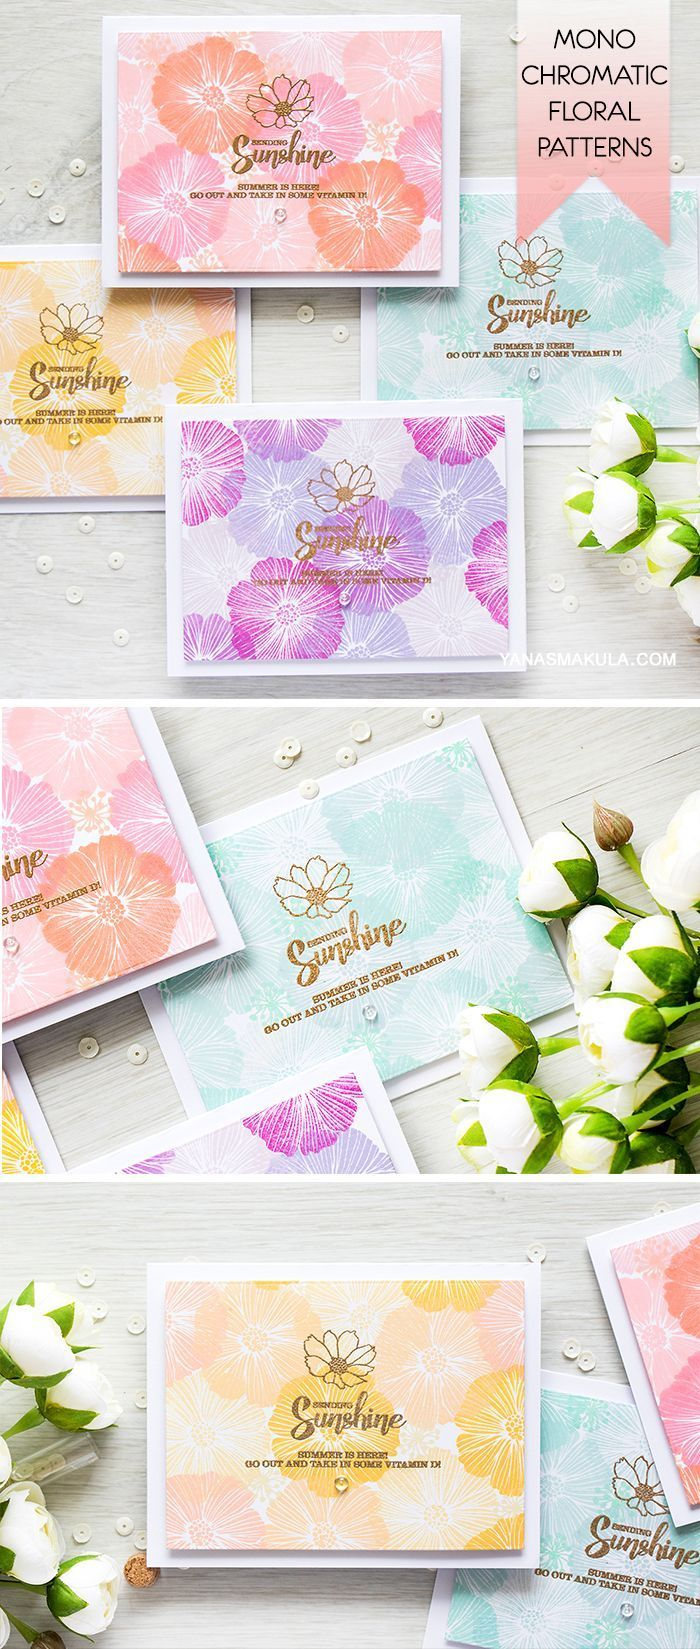 Create beautiful monochromatic stamped floral patterns with the help of Happy Days stamp set and dye inks from Simon Says Stamp. For details and a video tutorial, visit http://www.yanasmakula.com/?p=54310